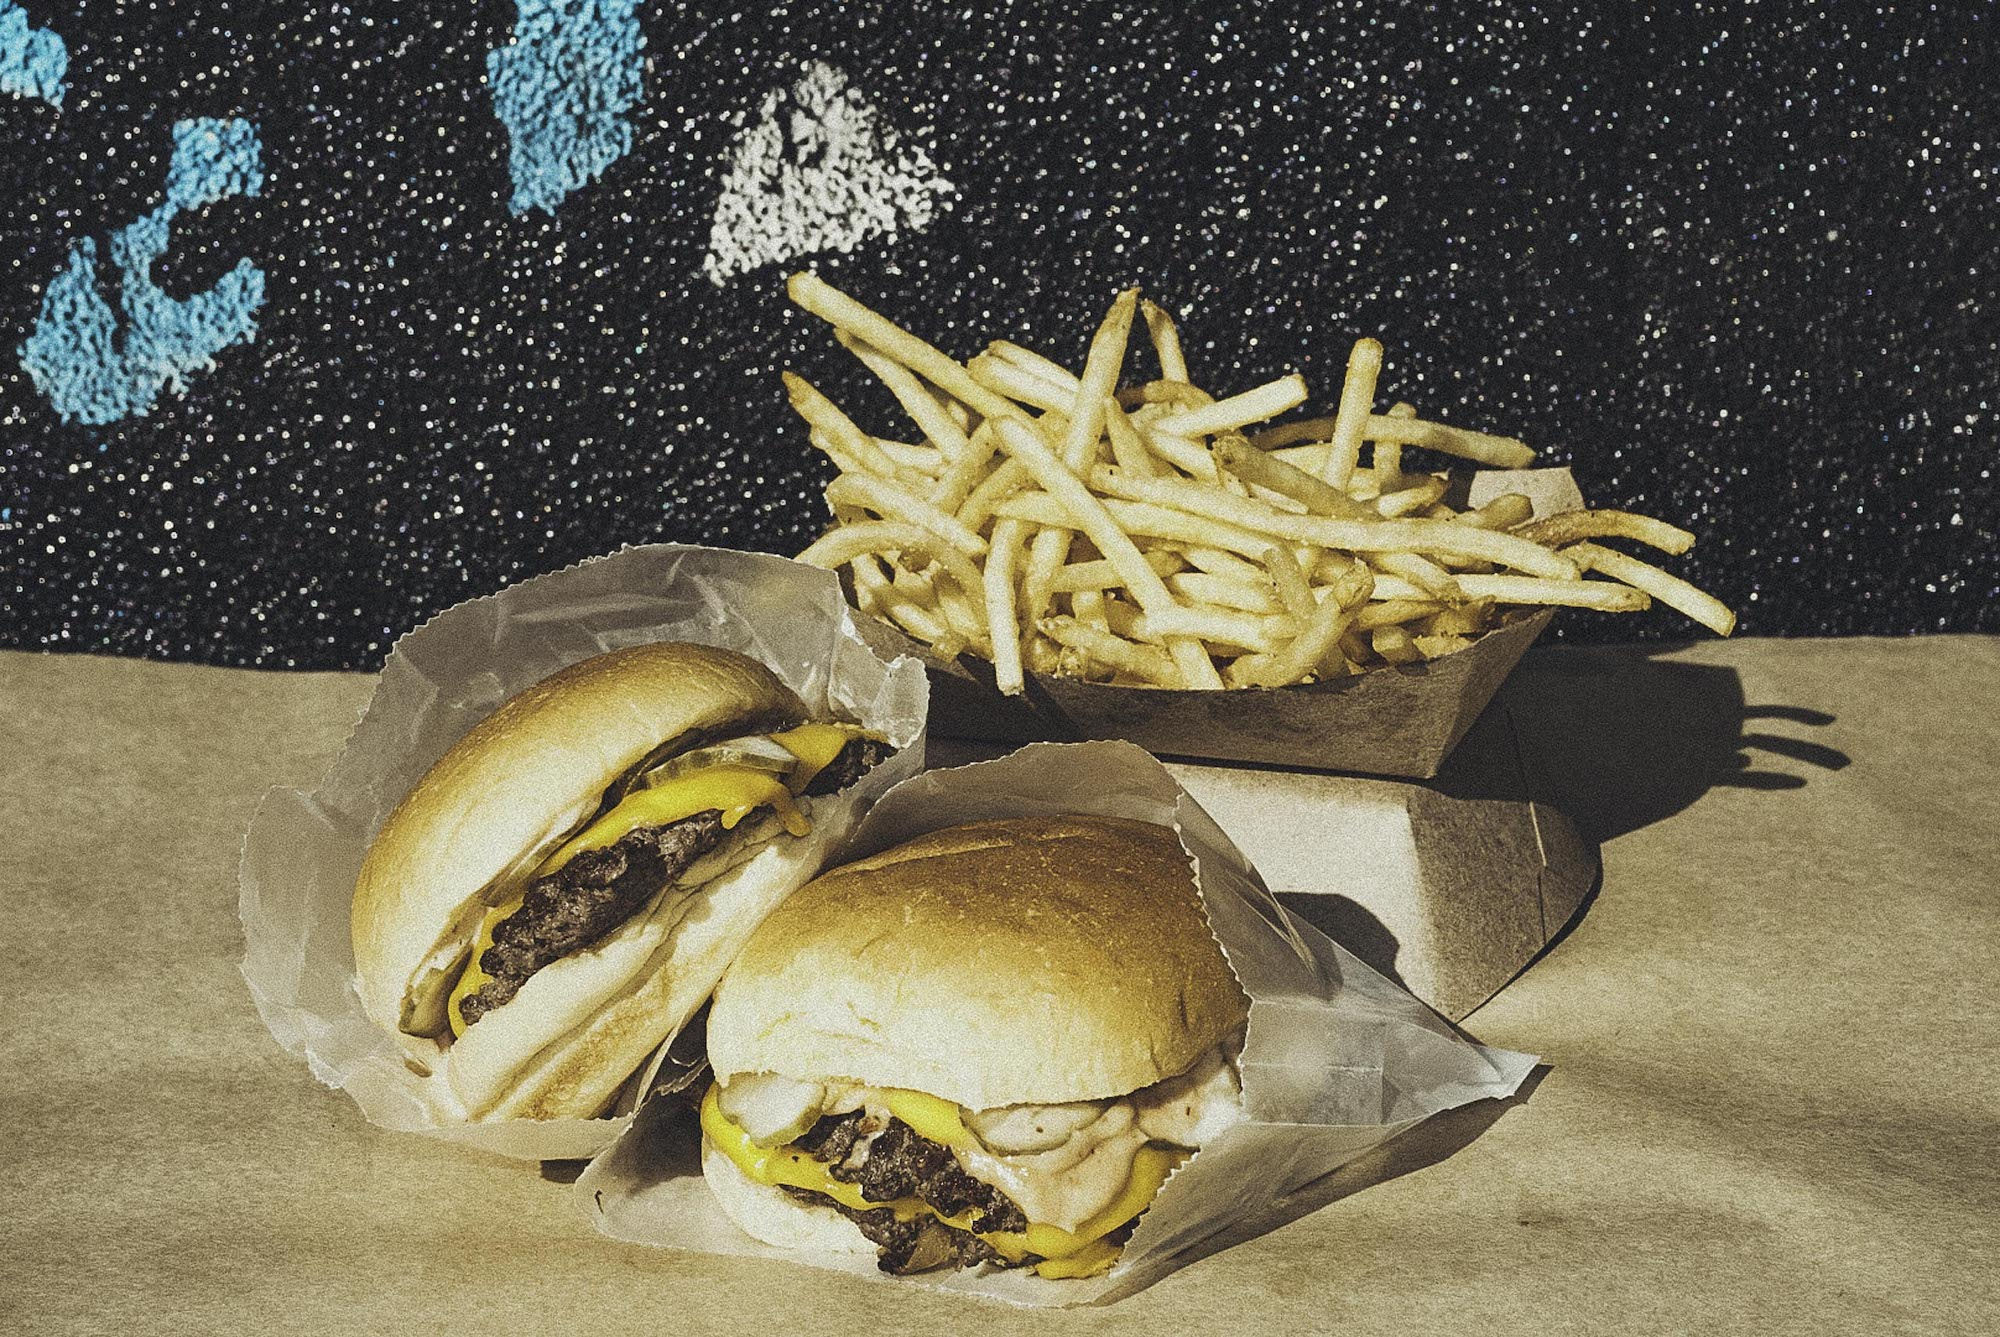 Two burgers perched atop one another with fries and a colorful background.